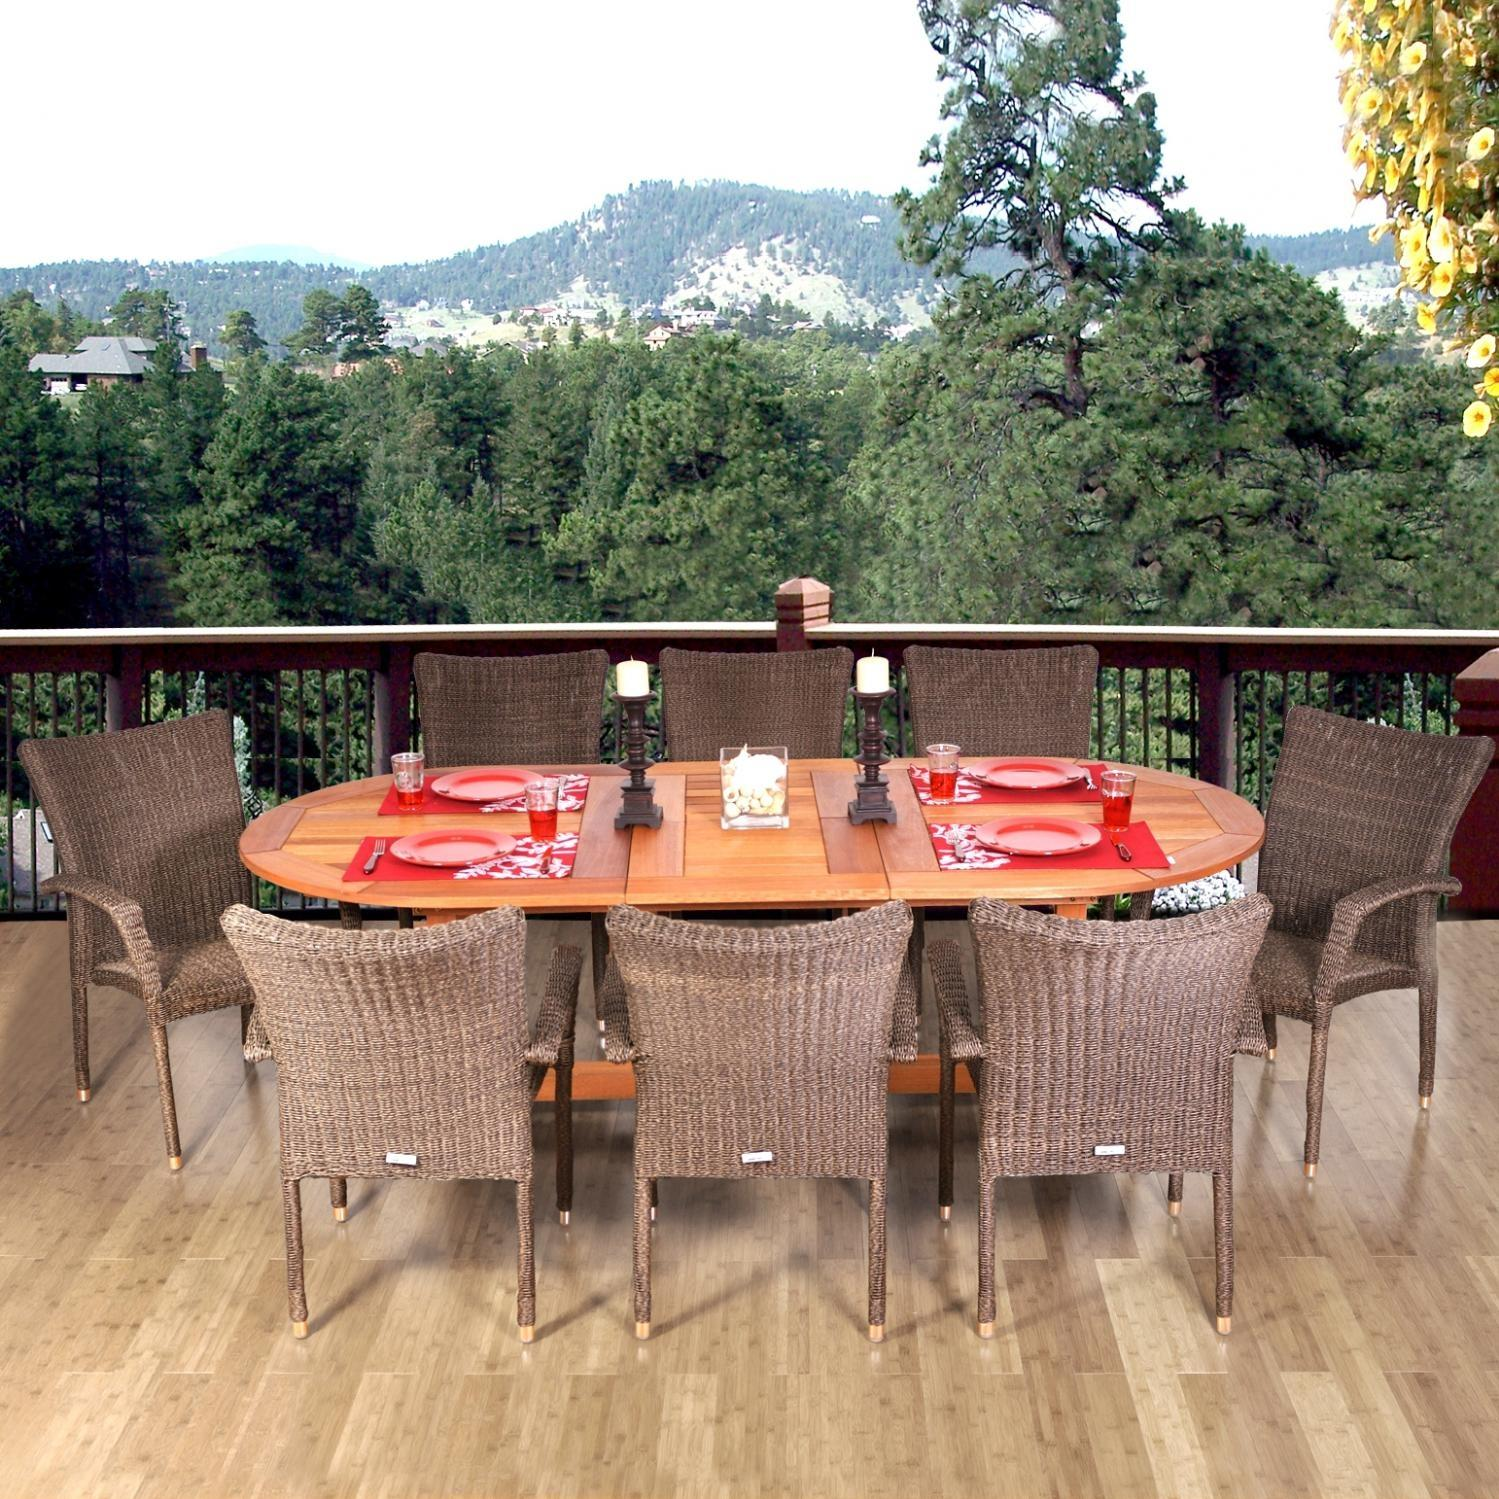 Amazonia Rennaisance 8-Person Resin Wicker Patio Dining Set With Extension Table And Stacking Chairs 2866264